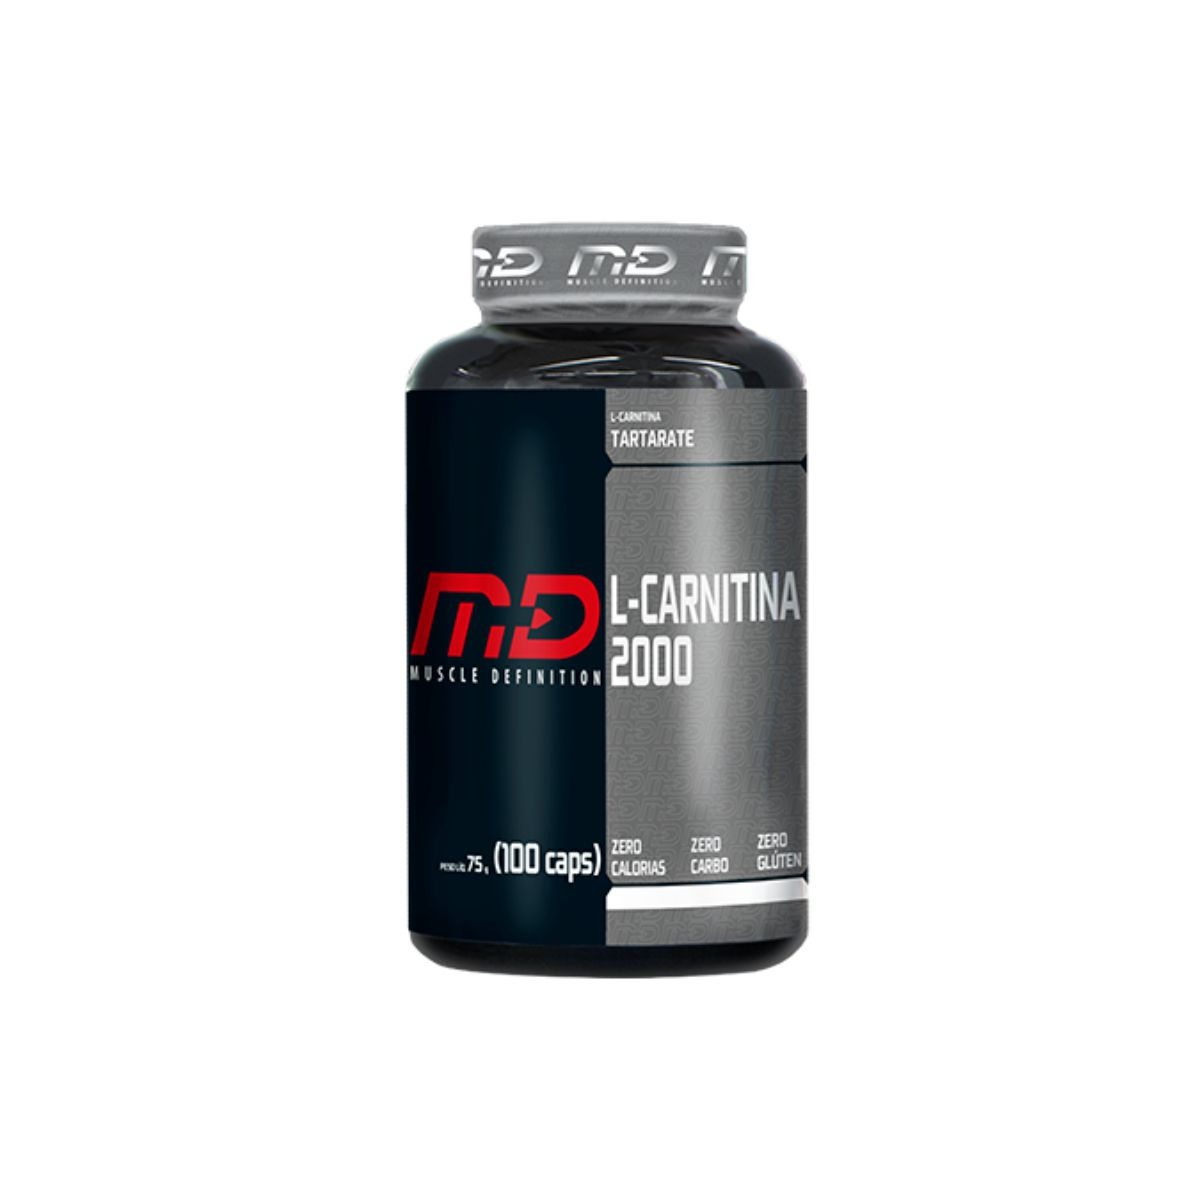 L-Carnitina 2000 100 Caps - Muscle Definition